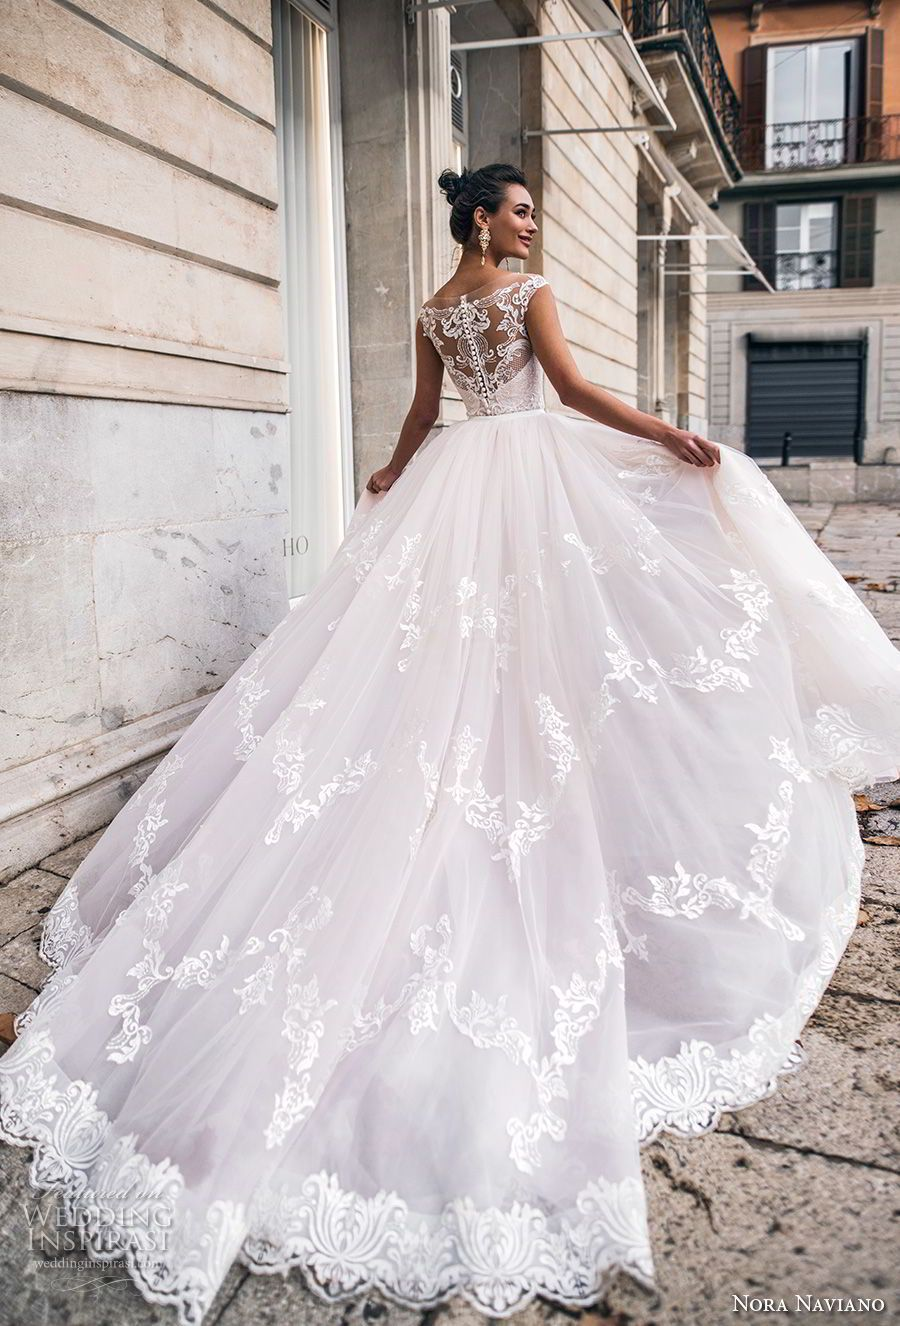 d634aada494 nora naviano 2019 bridal cap sleeves sweetheart neckline full embellishment  princess blush a line wedding dress sheer lace back chapel train (14) bv --  Nora ...